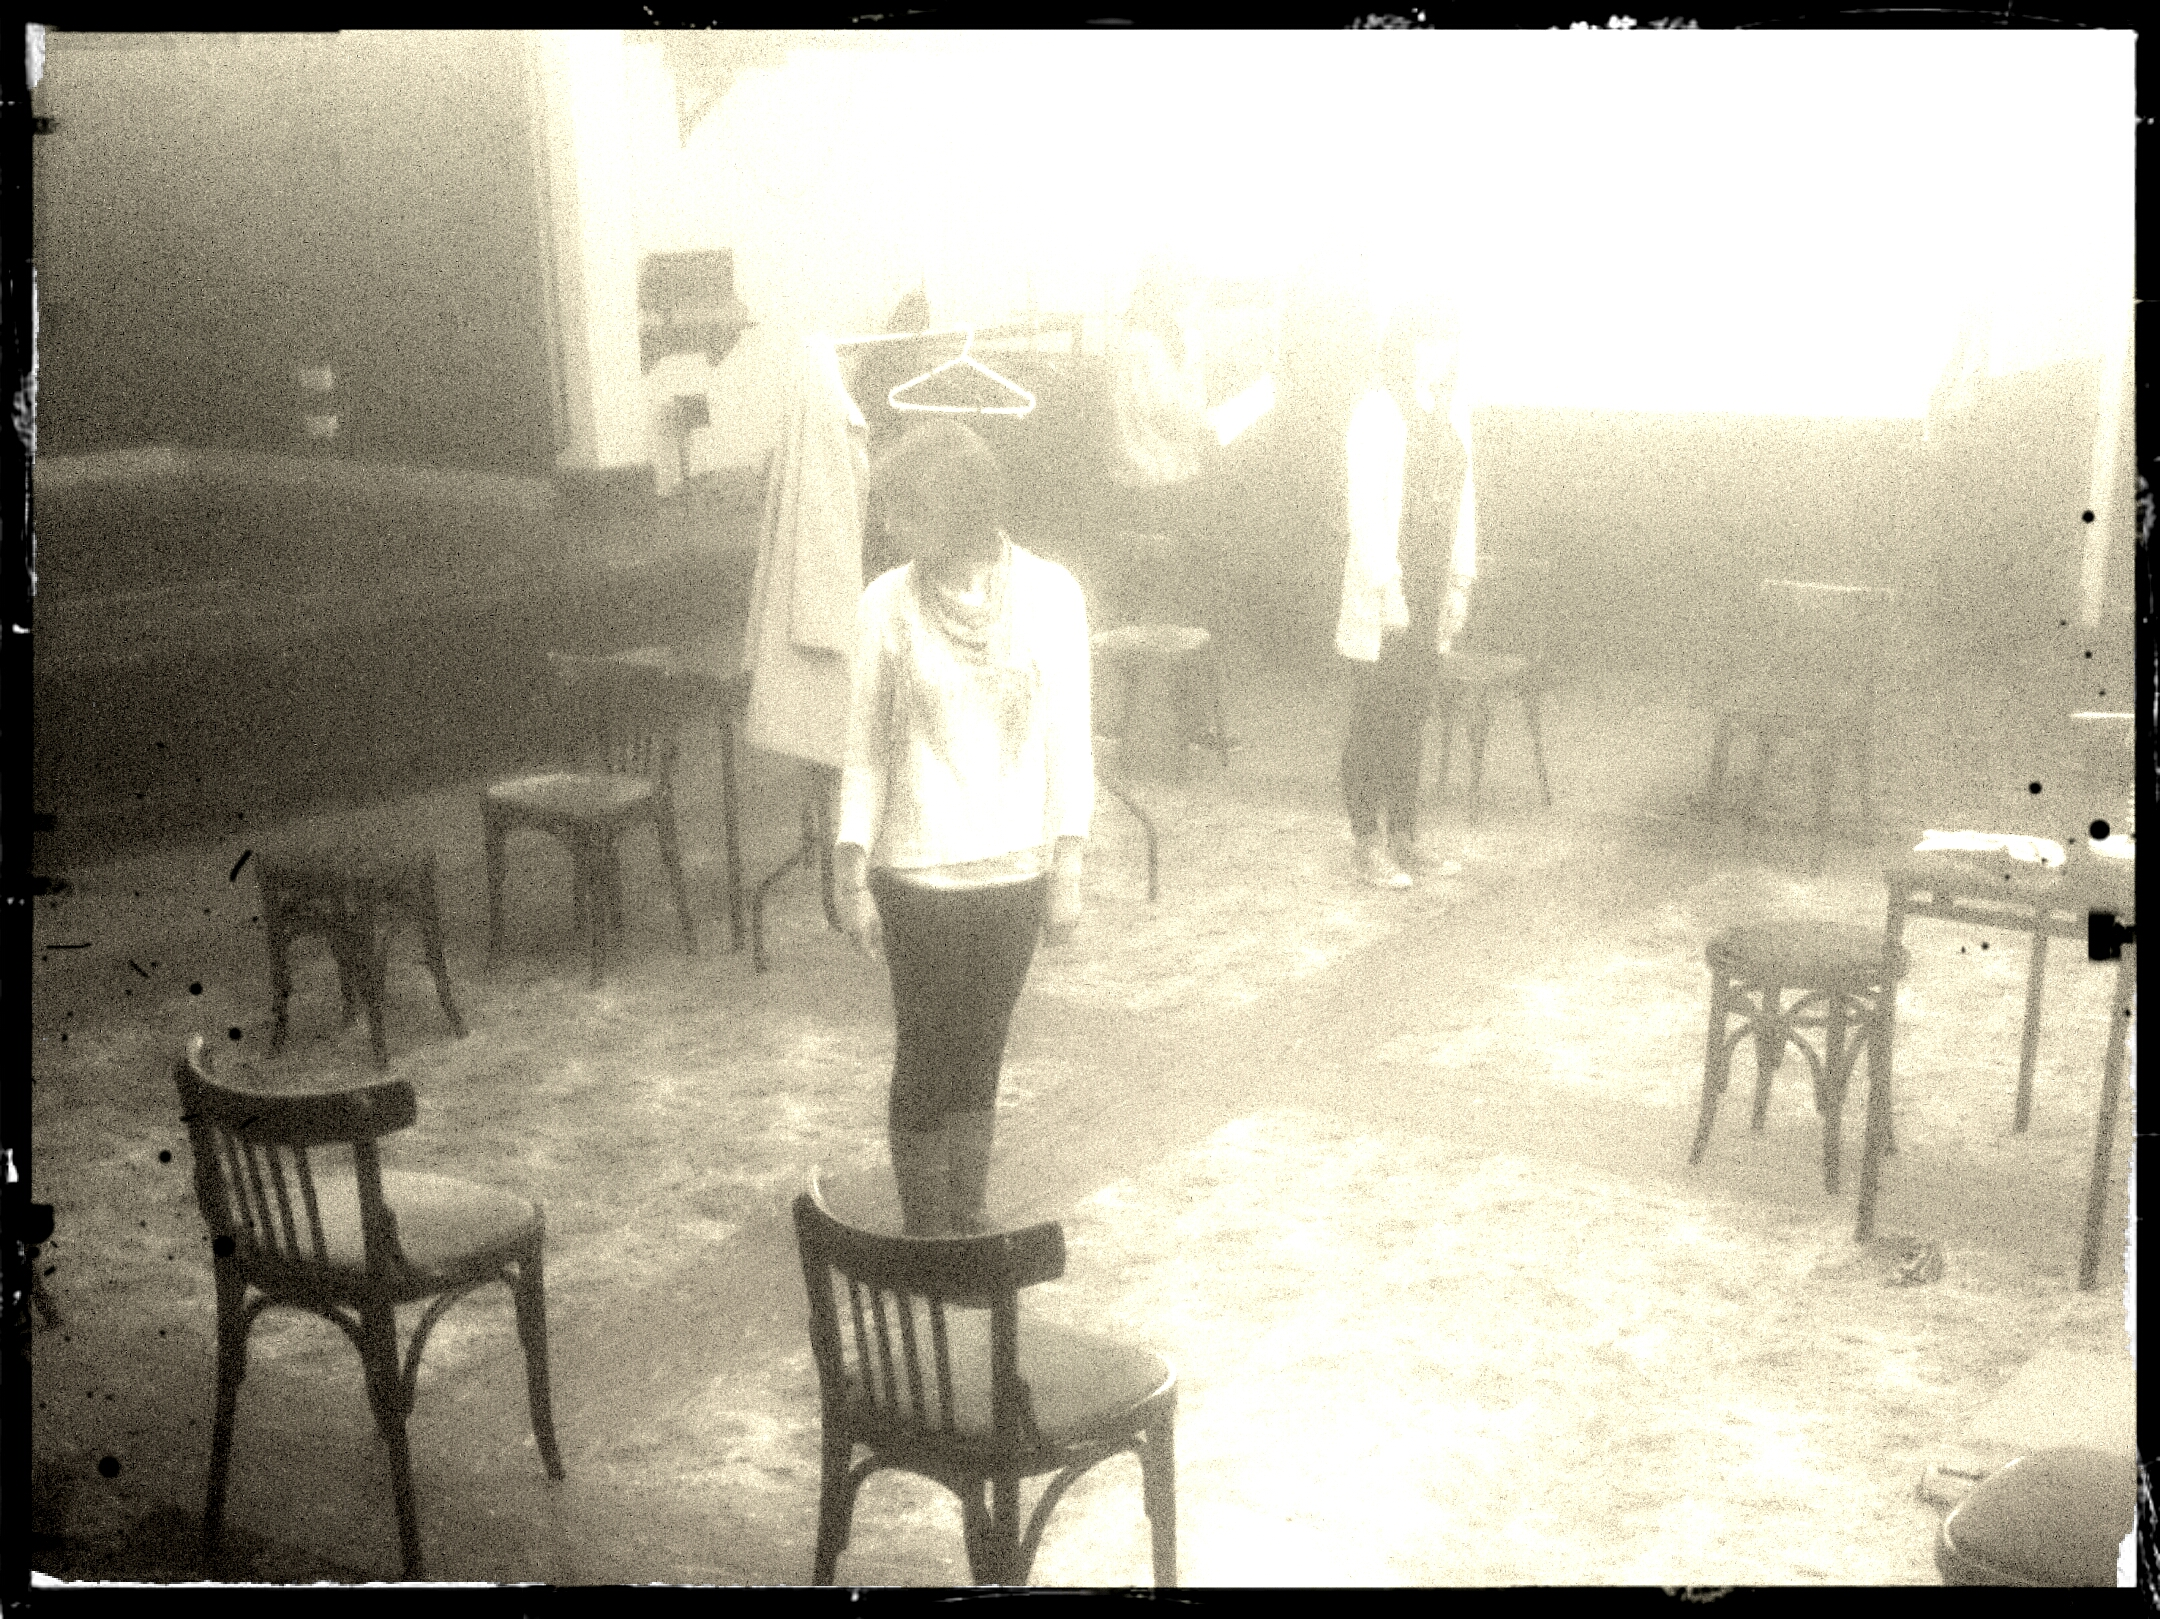 The Maids rehearsal shots